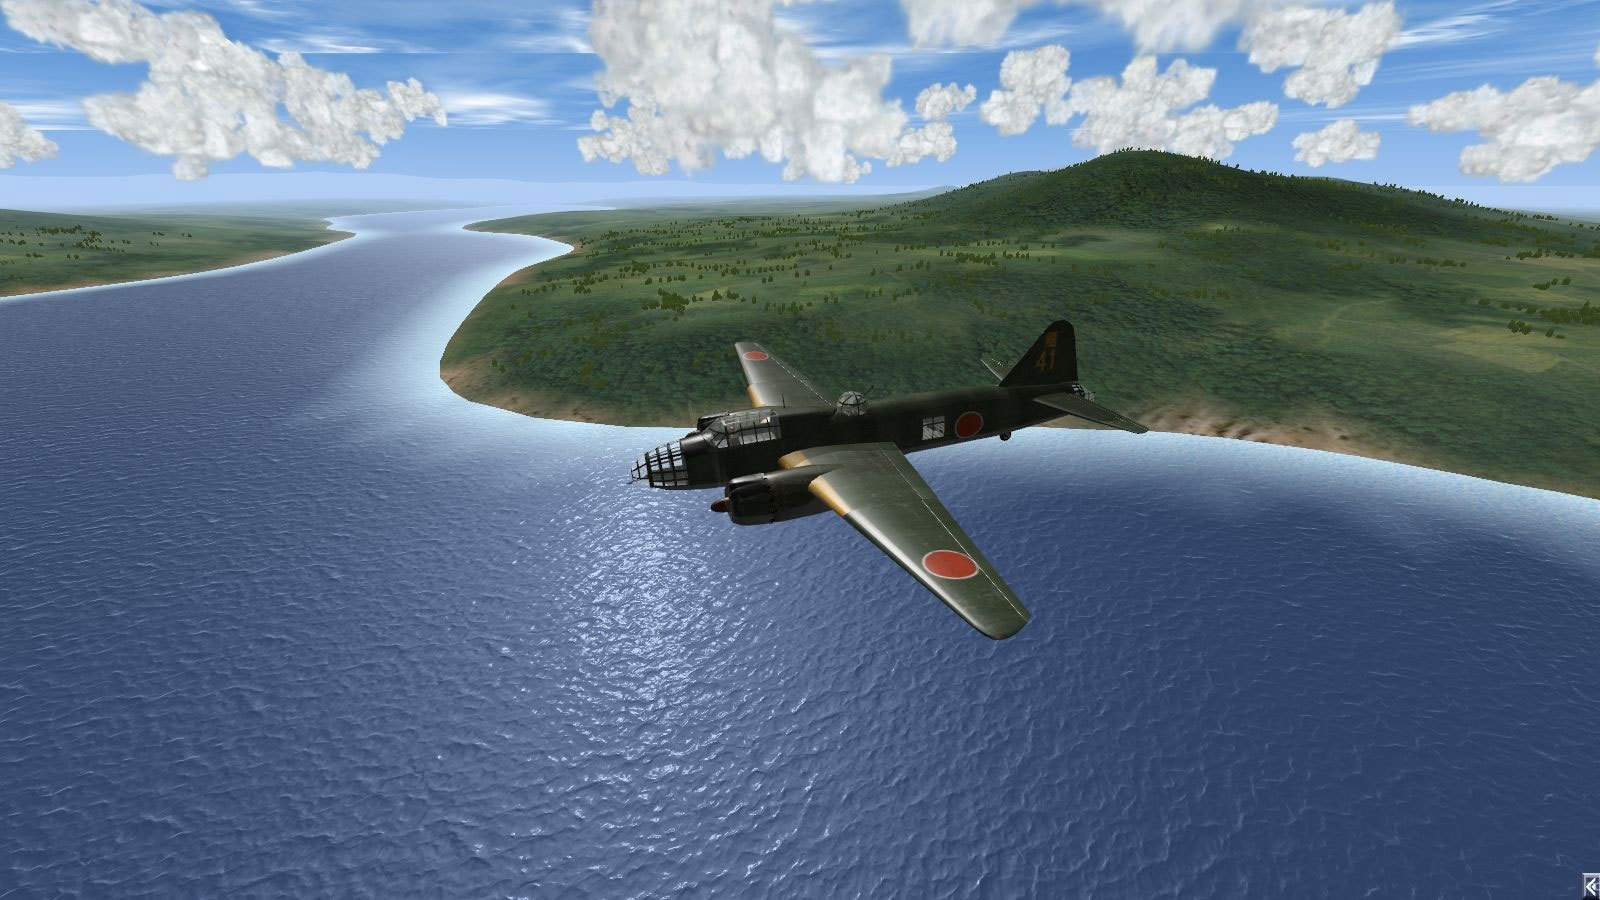 World war 2 flying games for mac 2 player multiplayer browser games